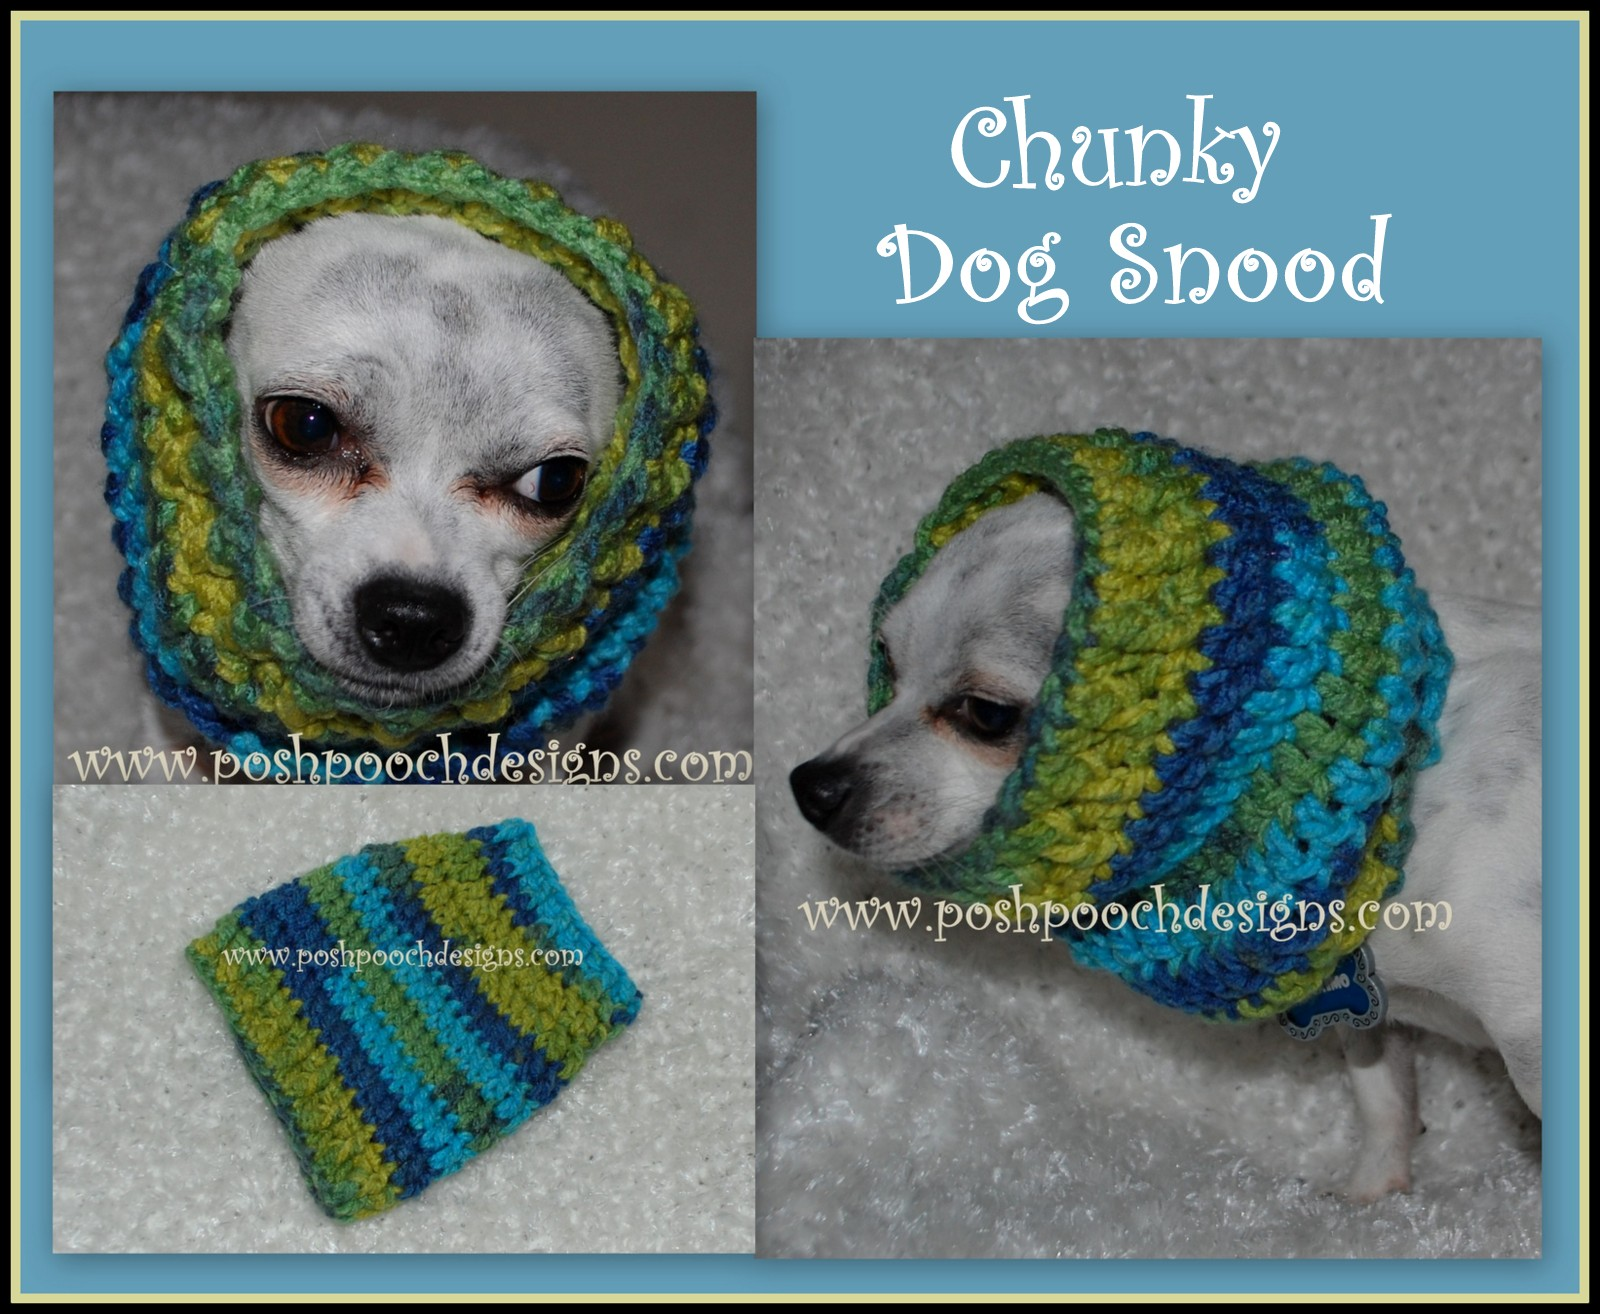 Posh Pooch Designs Dog Clothes: Dog Snood Crochet Pattern - For All ...